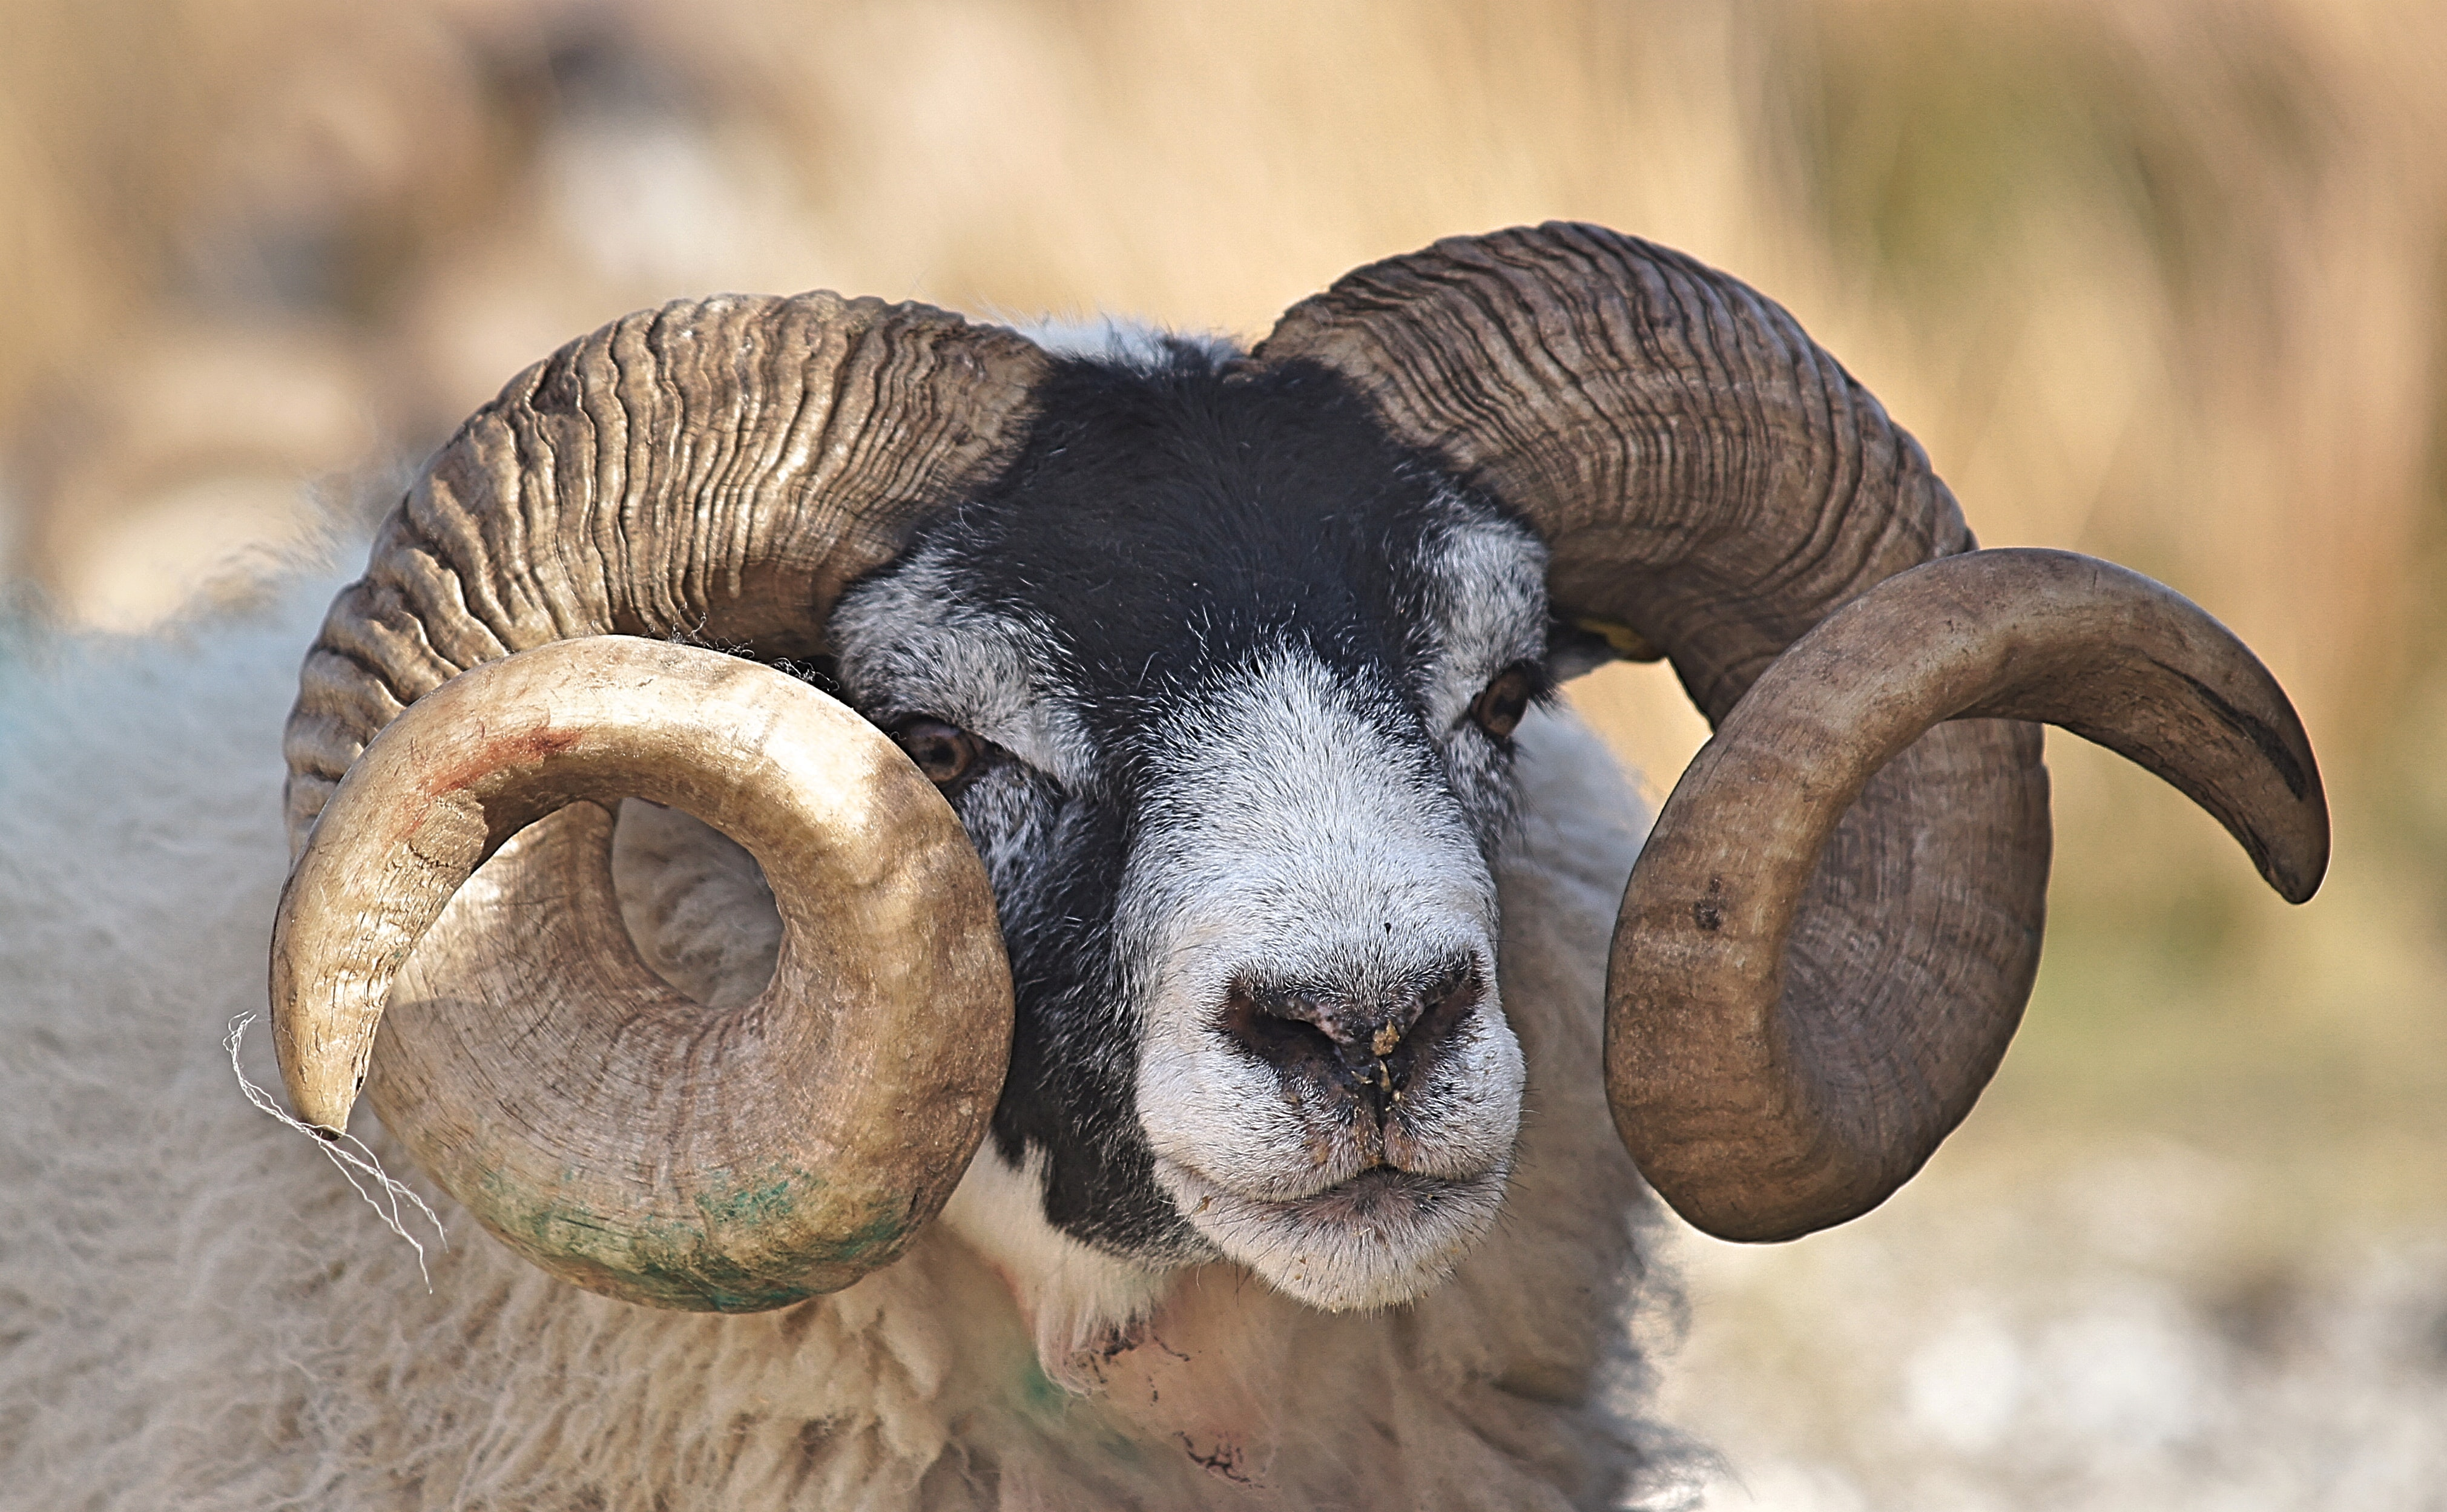 A ram with a black colored head and curling horns